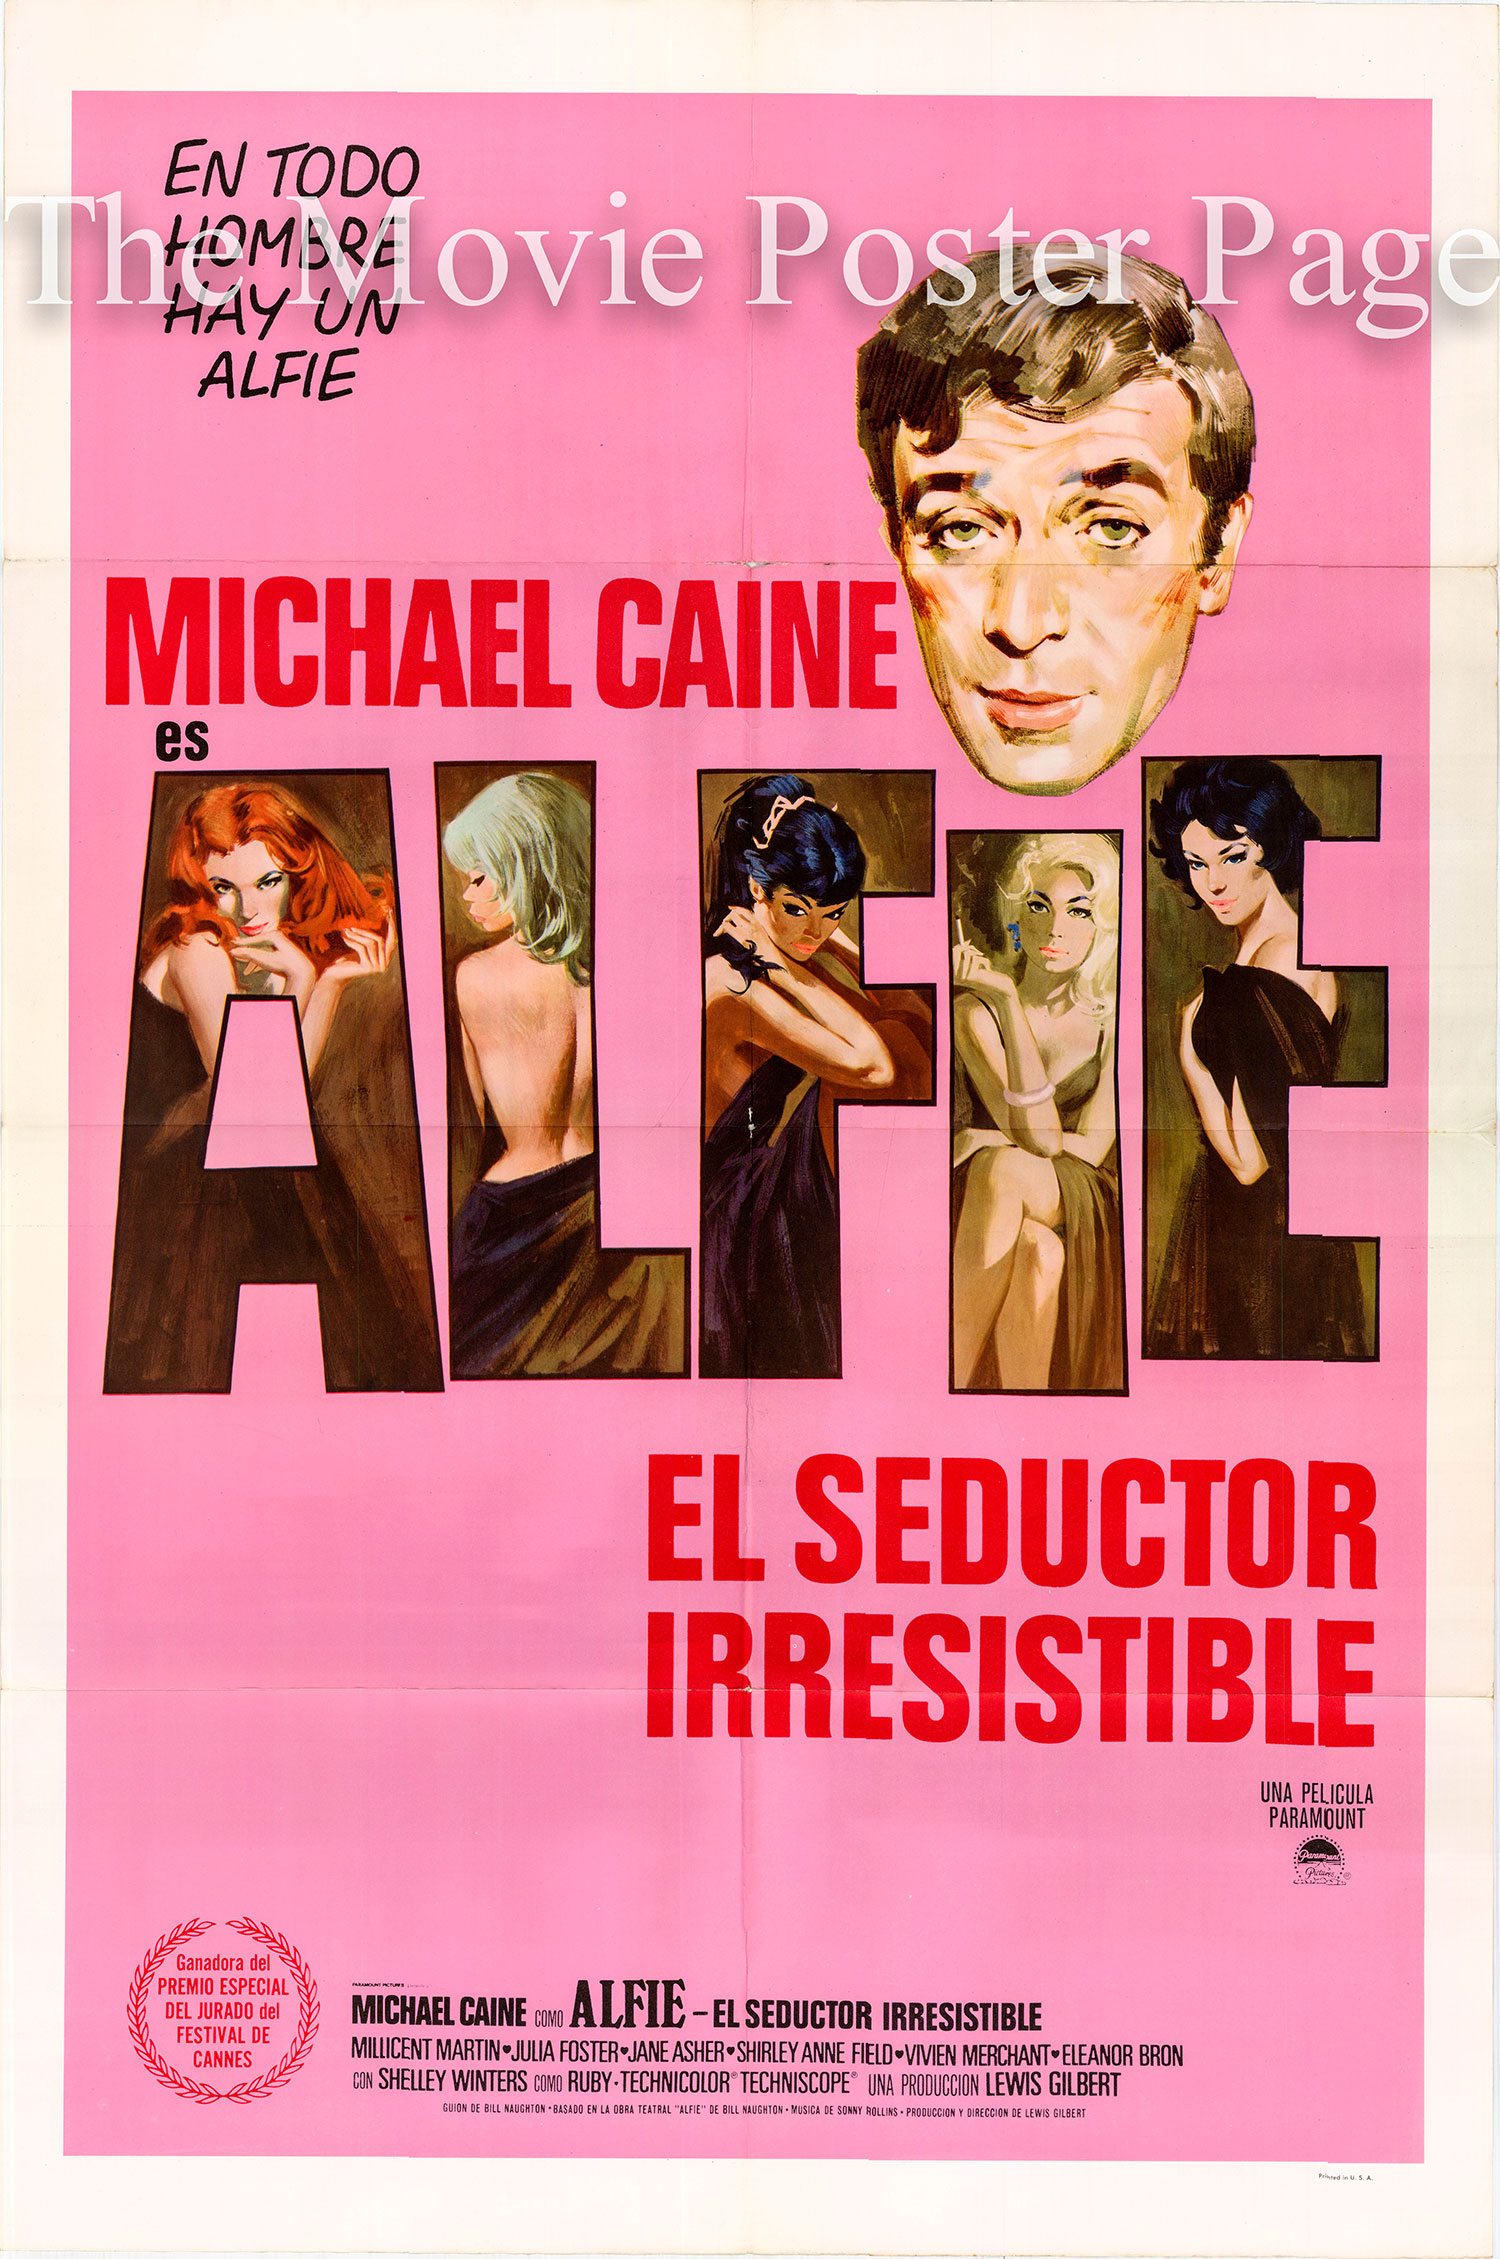 Pictured is a US-made Spanish promotional poster for the 1966 Lewis Gilbert film Alfie starring Michael Caine.